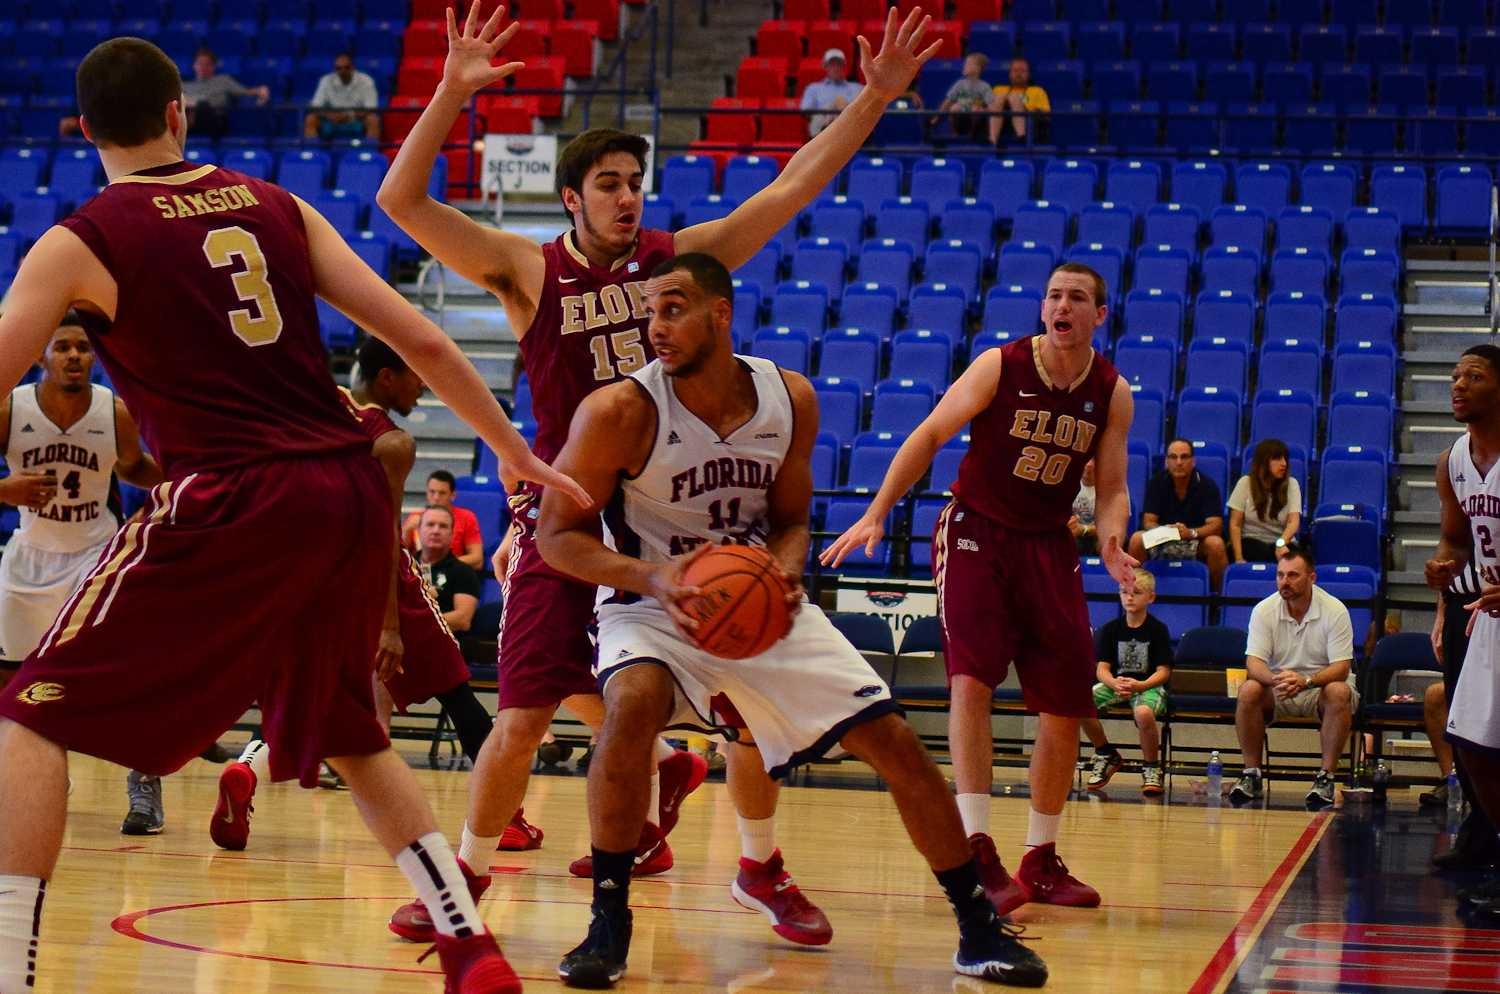 Forward Justin Raffington was one of several Owls who battle foul trouble, but the senior finished with ten points and nine rebounds. Raffington is pictured here during a home versus Elon from the 2013-2014 season. Photo by Max Jackson